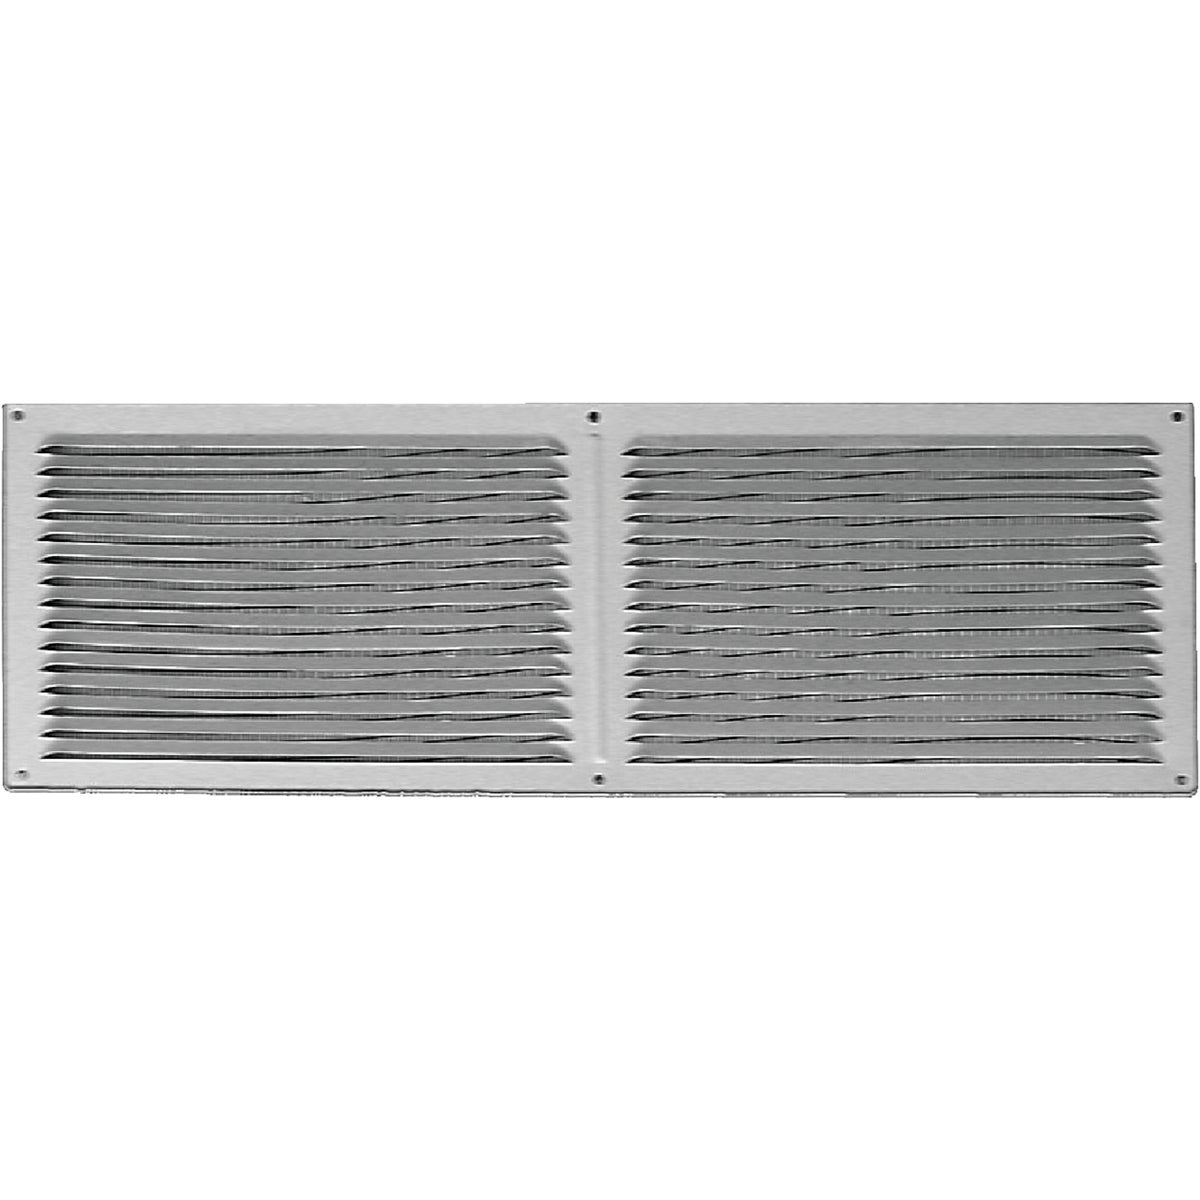 16X6 GALV SOFFIT VENT - 558006 by Noll/norwesco Llc